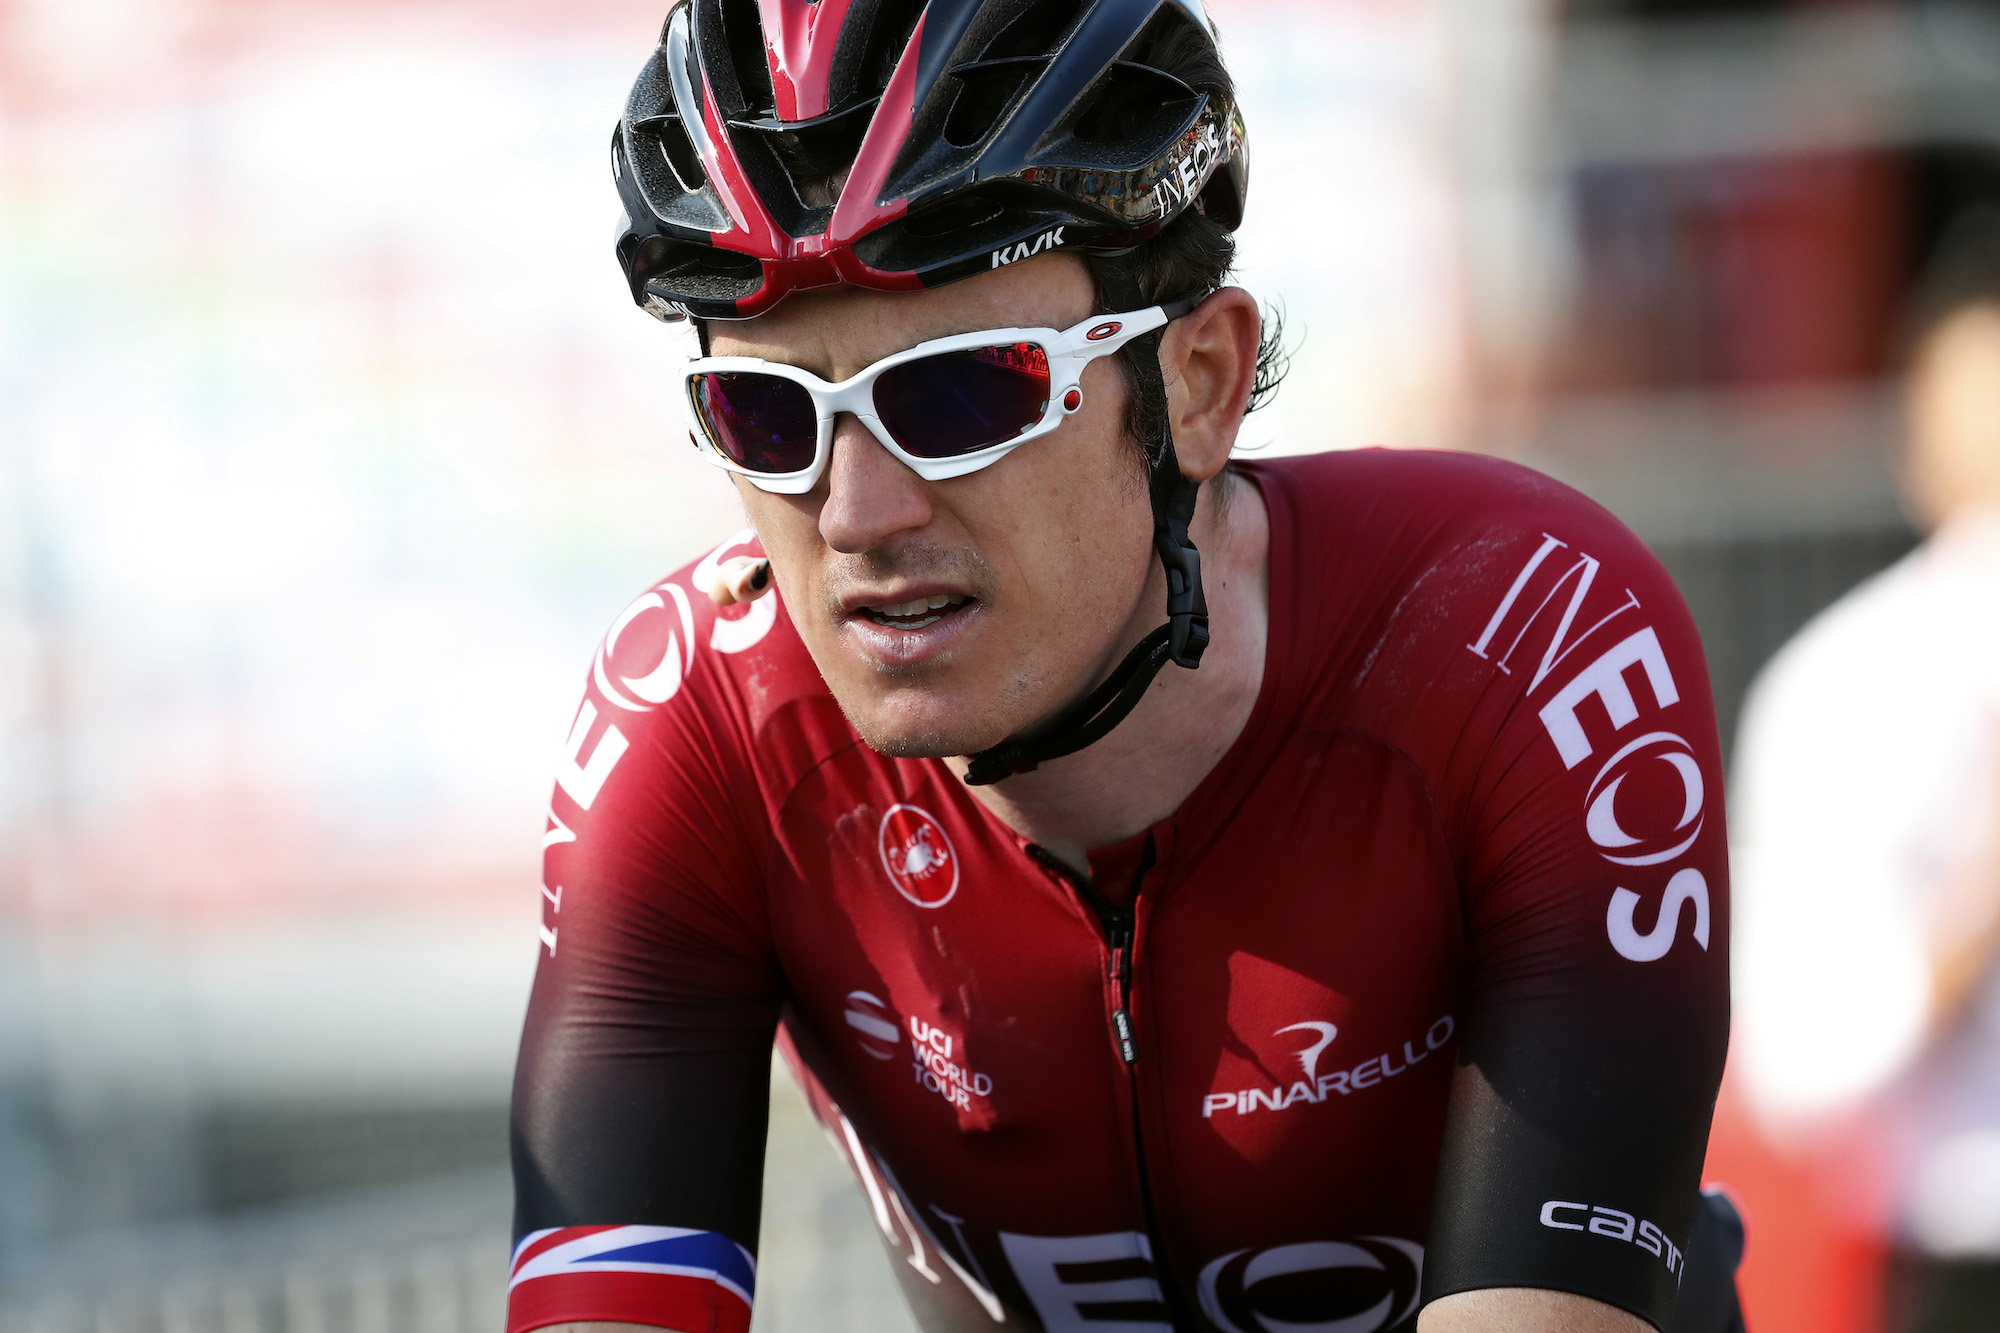 Geraint Thomas gives update on his early-season form - Cycling Weekly